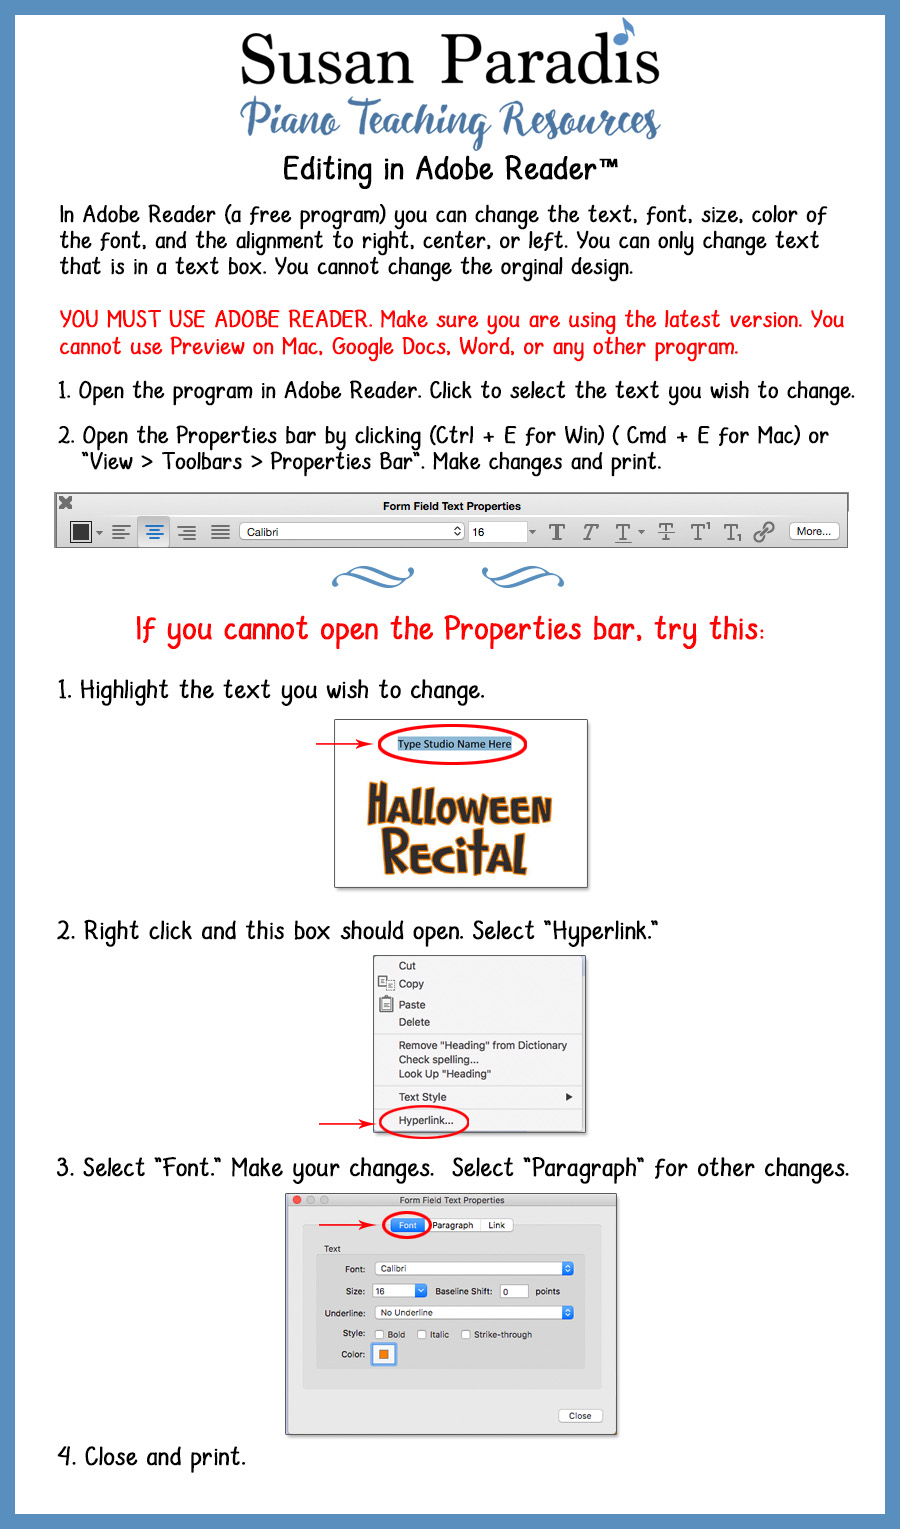 How to edit text fields in Adobe Reader